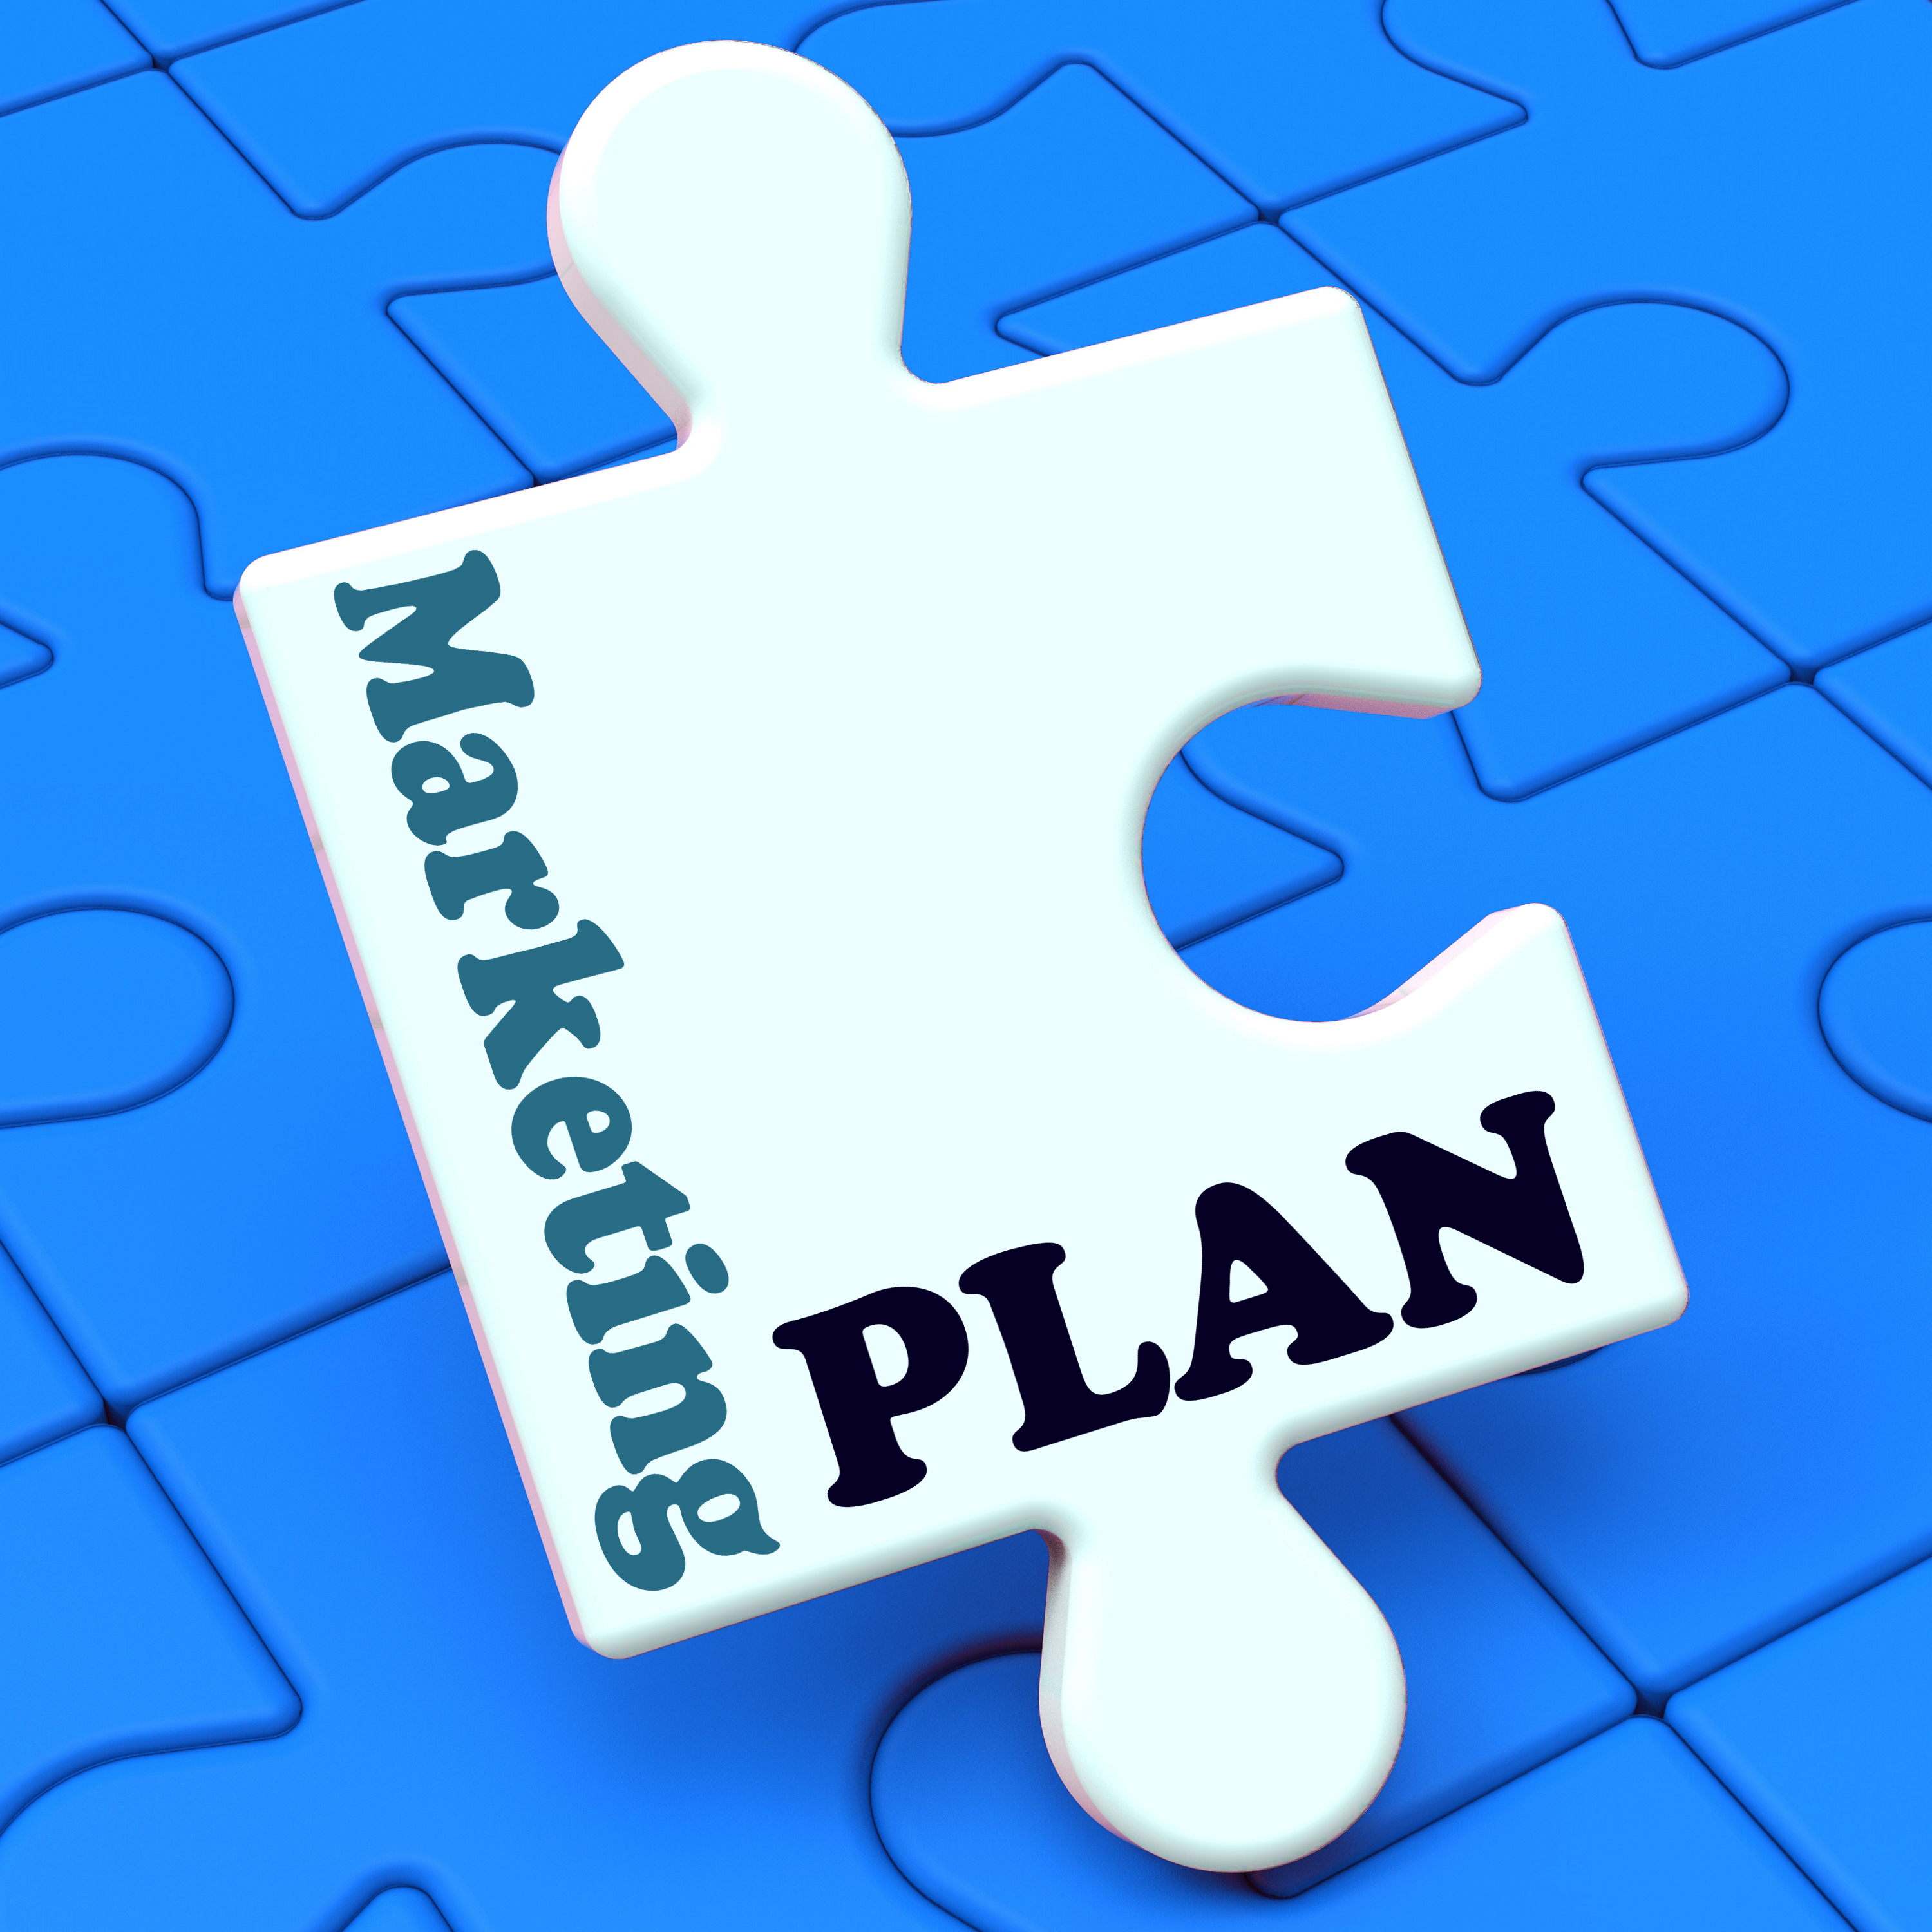 3 Day Motivated Seller Marketing Plan (Part 2 of 2).